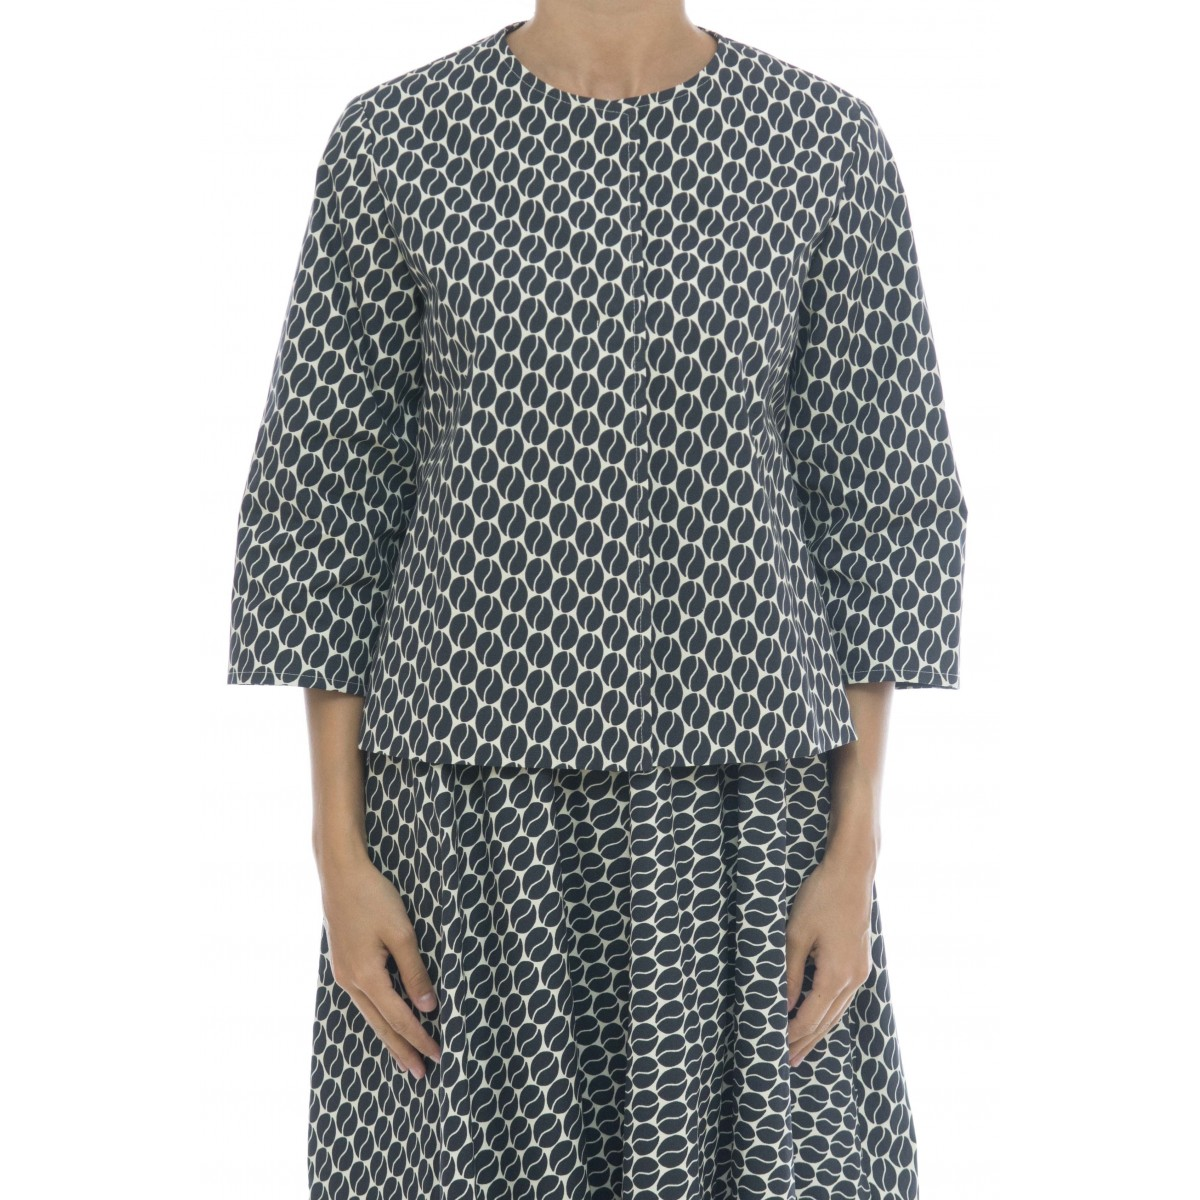 Giacca donna - 311 t0k giacca stampa